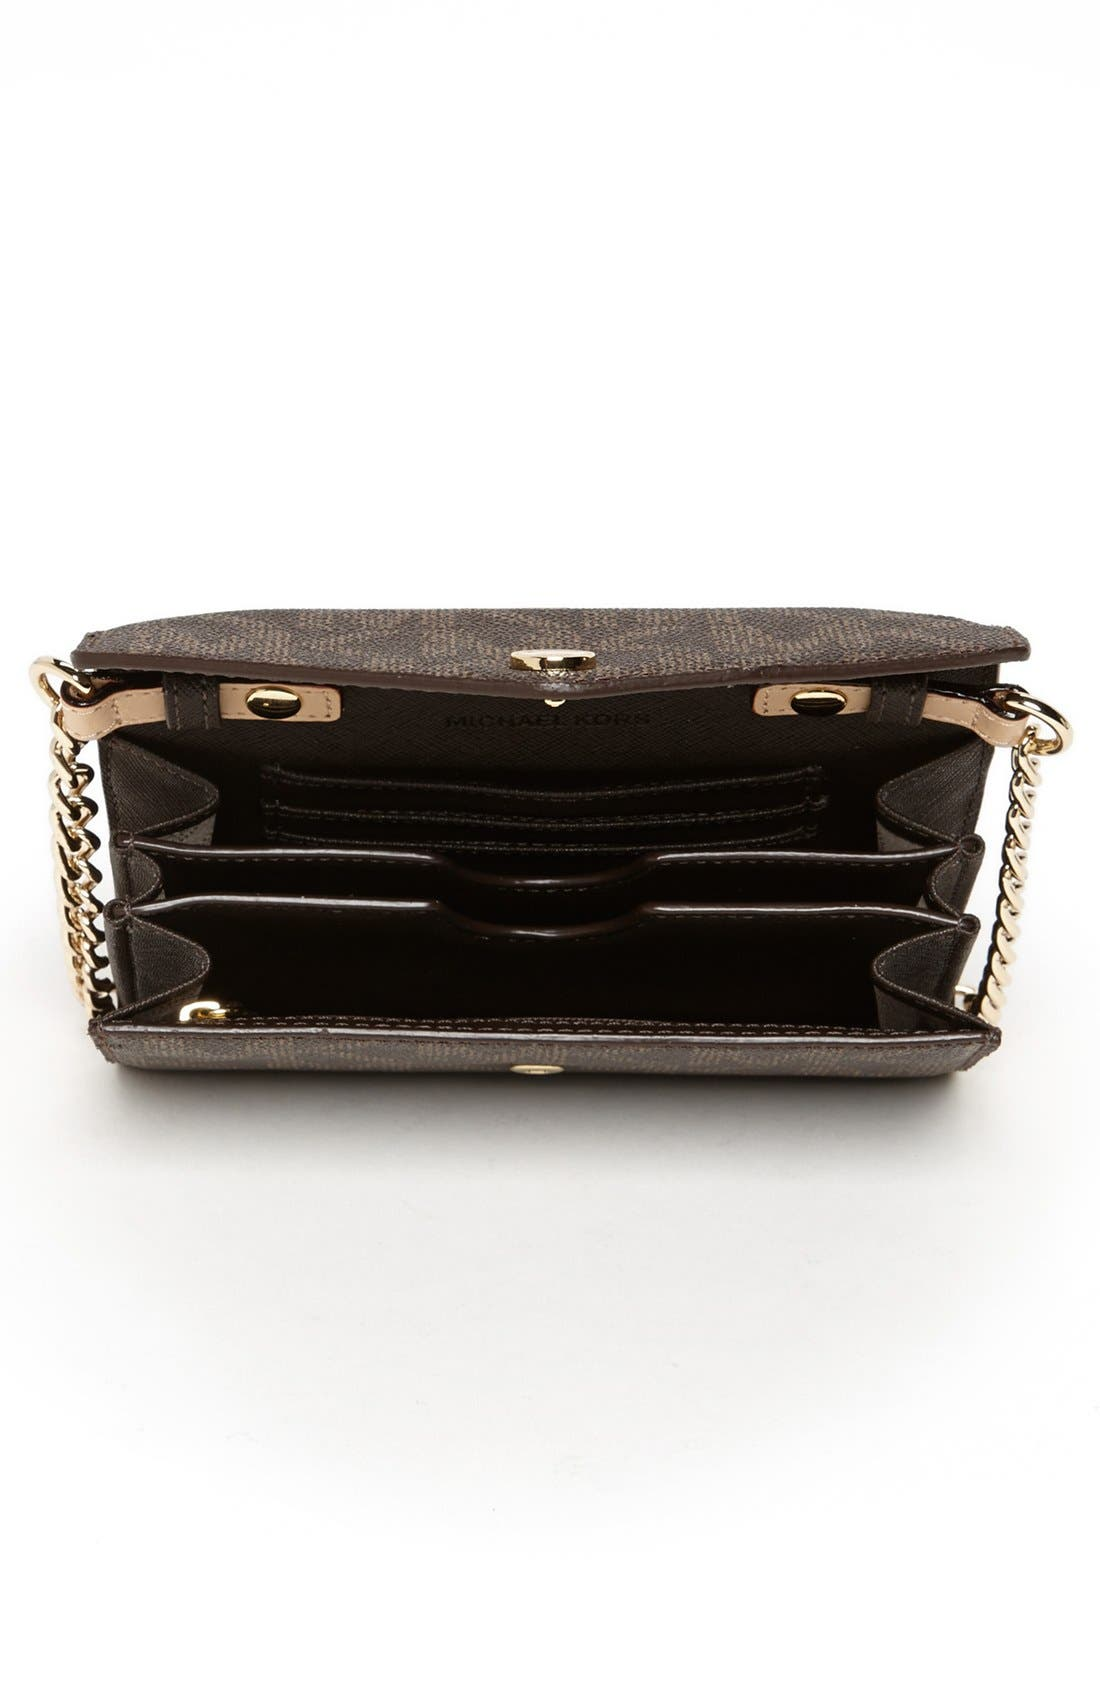 Alternate Image 3  - MICHAEL Michael Kors 'Signature - Saffiano' Crossbody Phone Bag